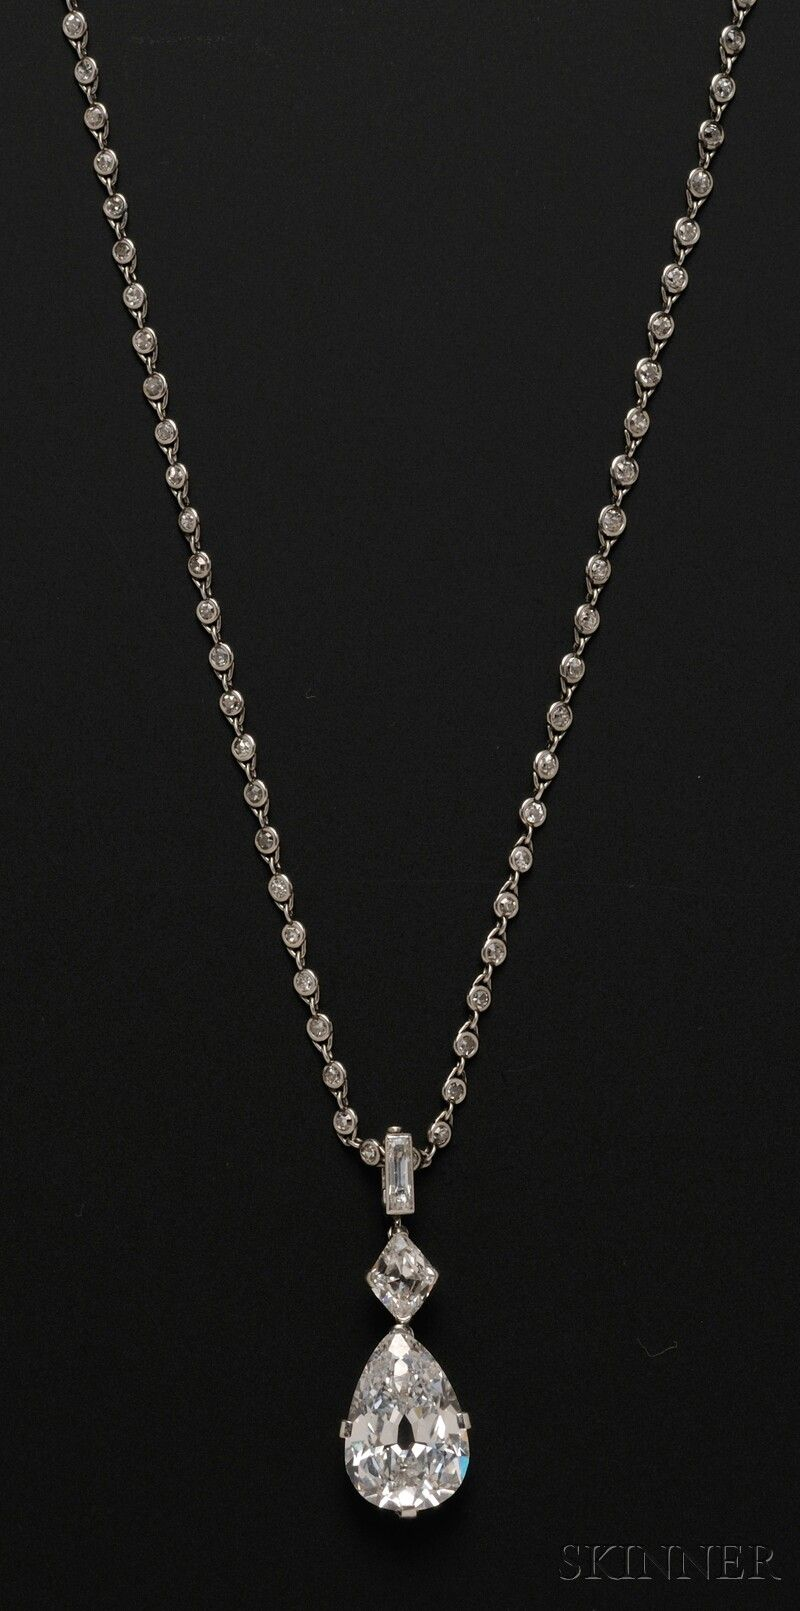 Cartier diamond necklace to die forne jewelry sale 2601b lot cartier diamond necklace to die forne jewelry sale 2601b lot 580 important art deco platinum and diamond pendant necklace cartier new york aloadofball Images